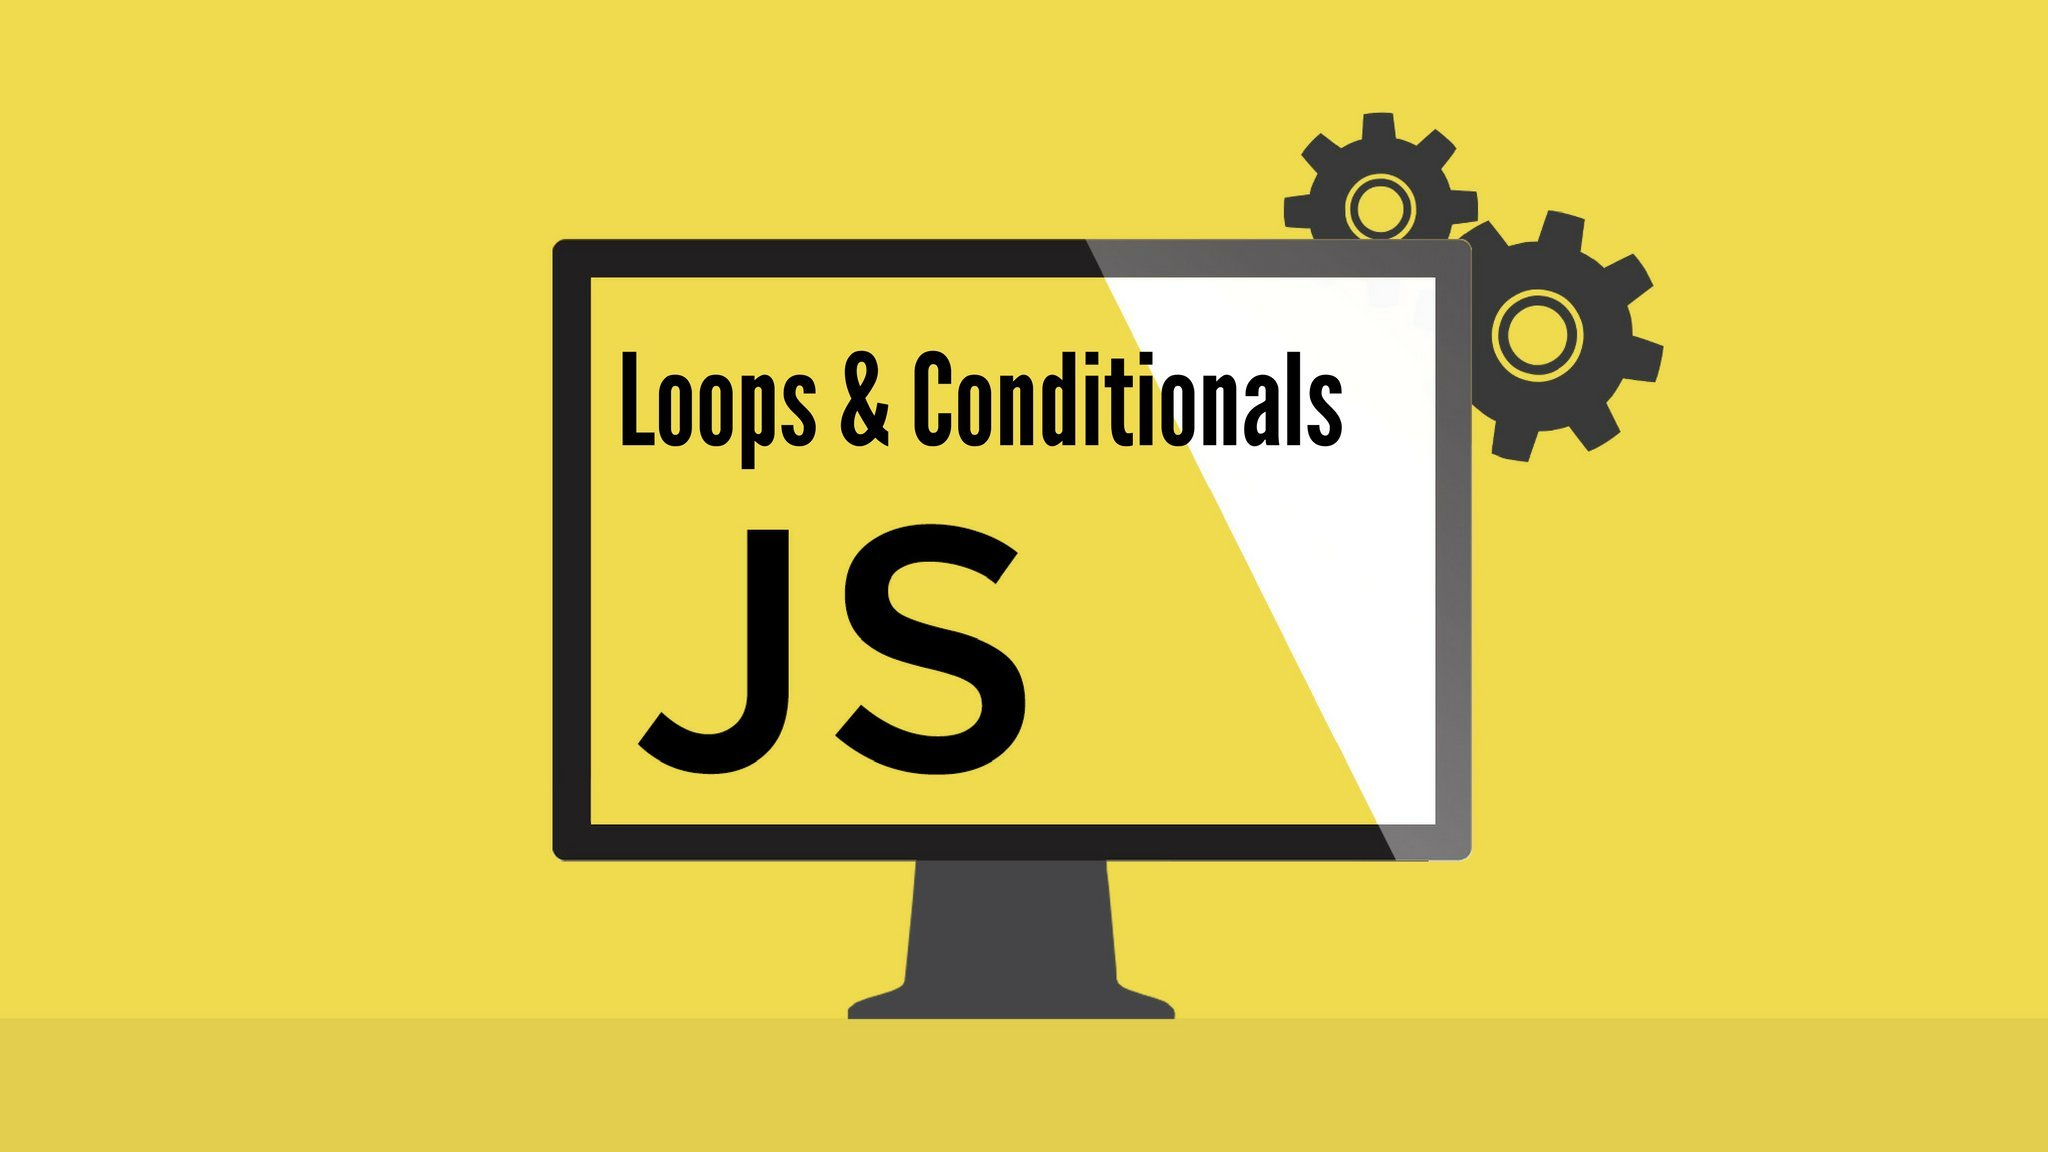 JavaScript the Basics for Beginners - Section 5: Loops & Conditionals